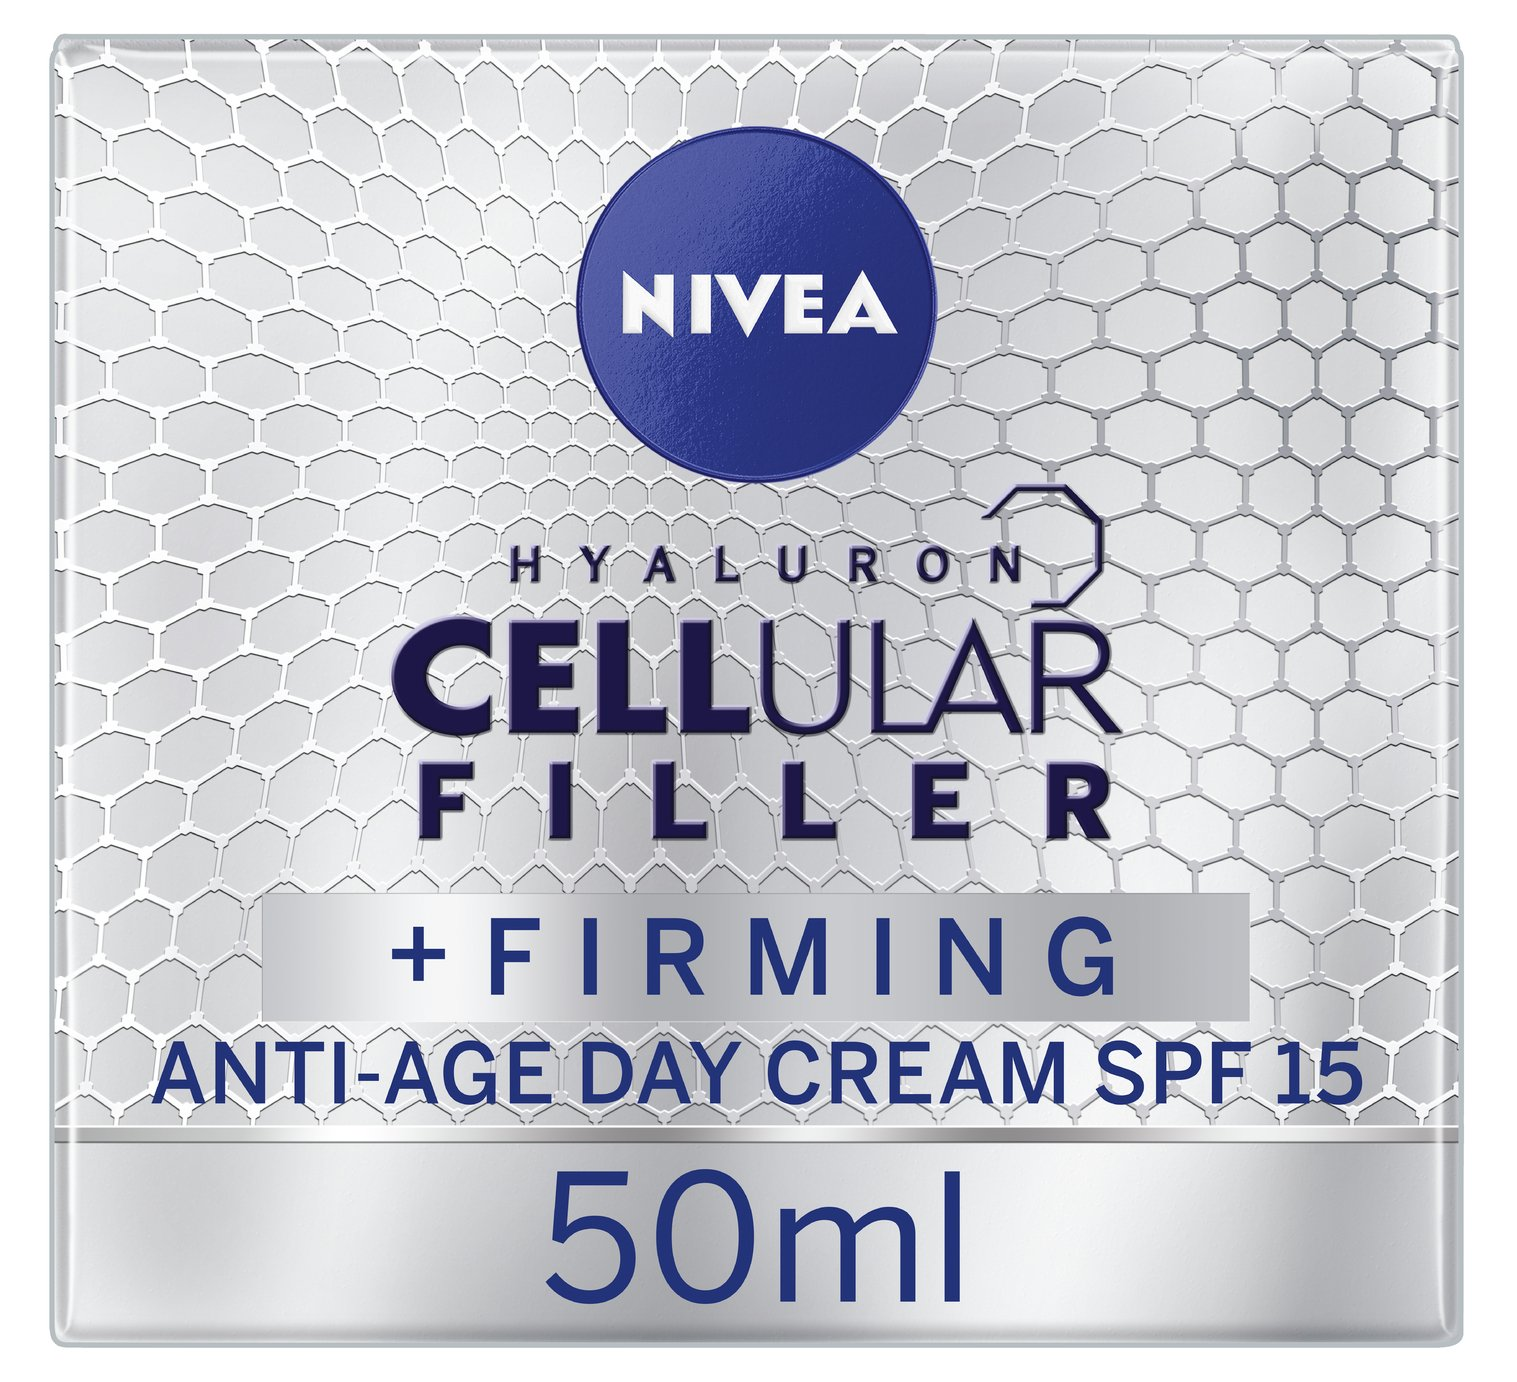 NIVEA Hyaluron Cellular Filler Anti-Age Day Cream - 50ml